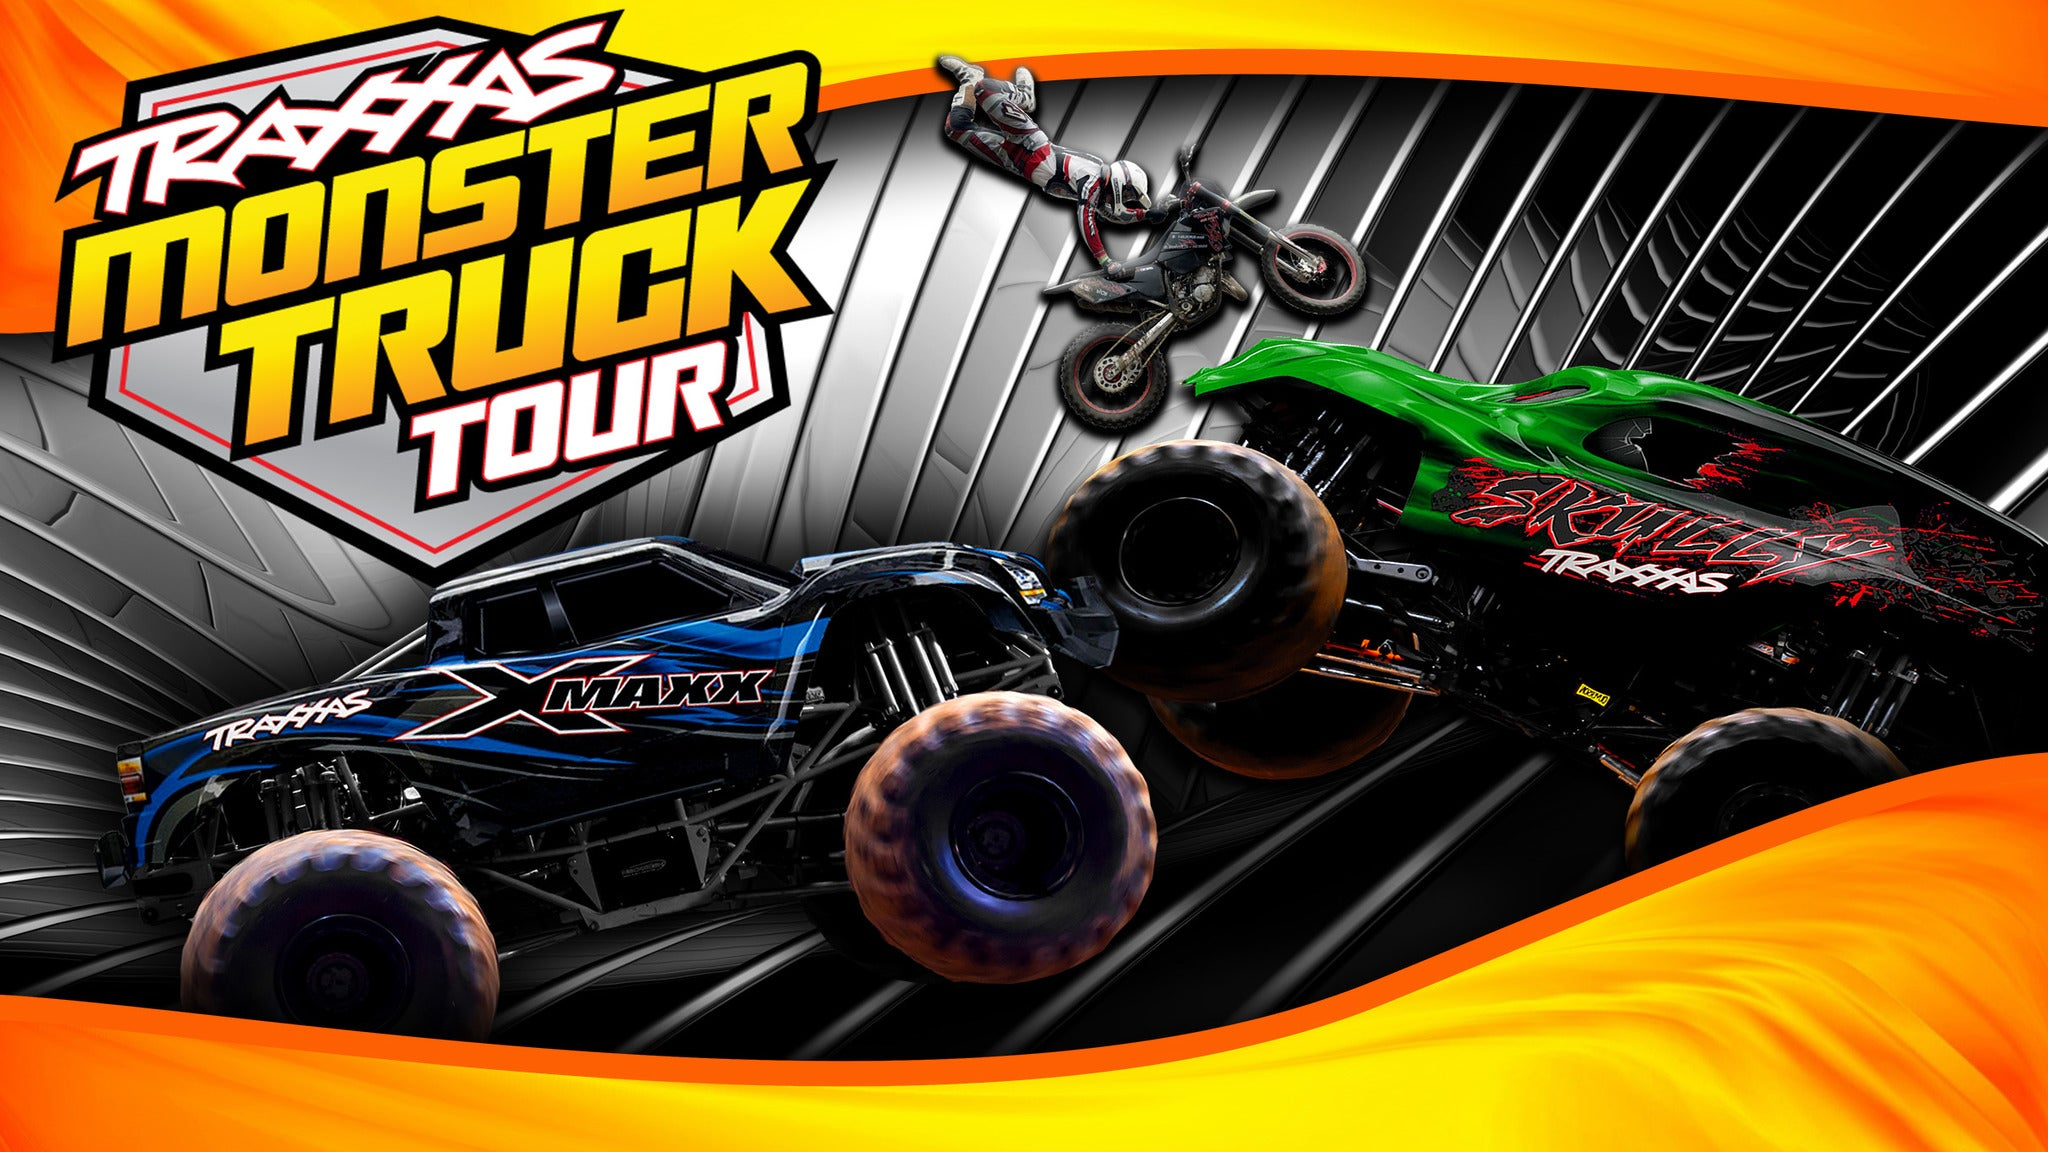 Traxxas Monster Truck Tour at Carlson Center